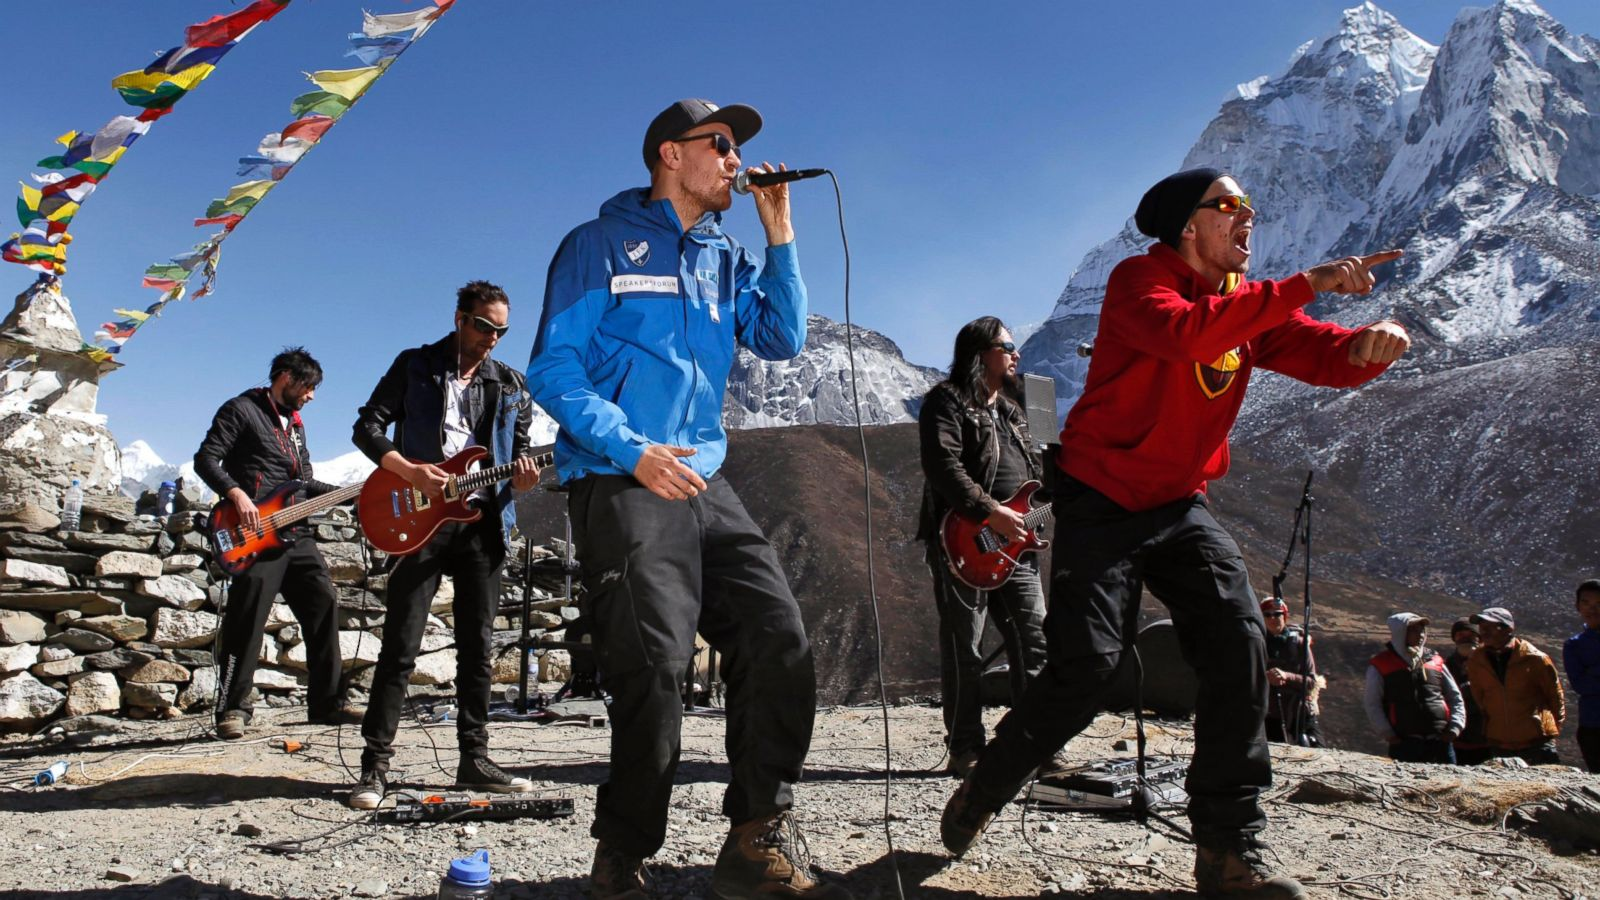 Finnish Rock Band near everest